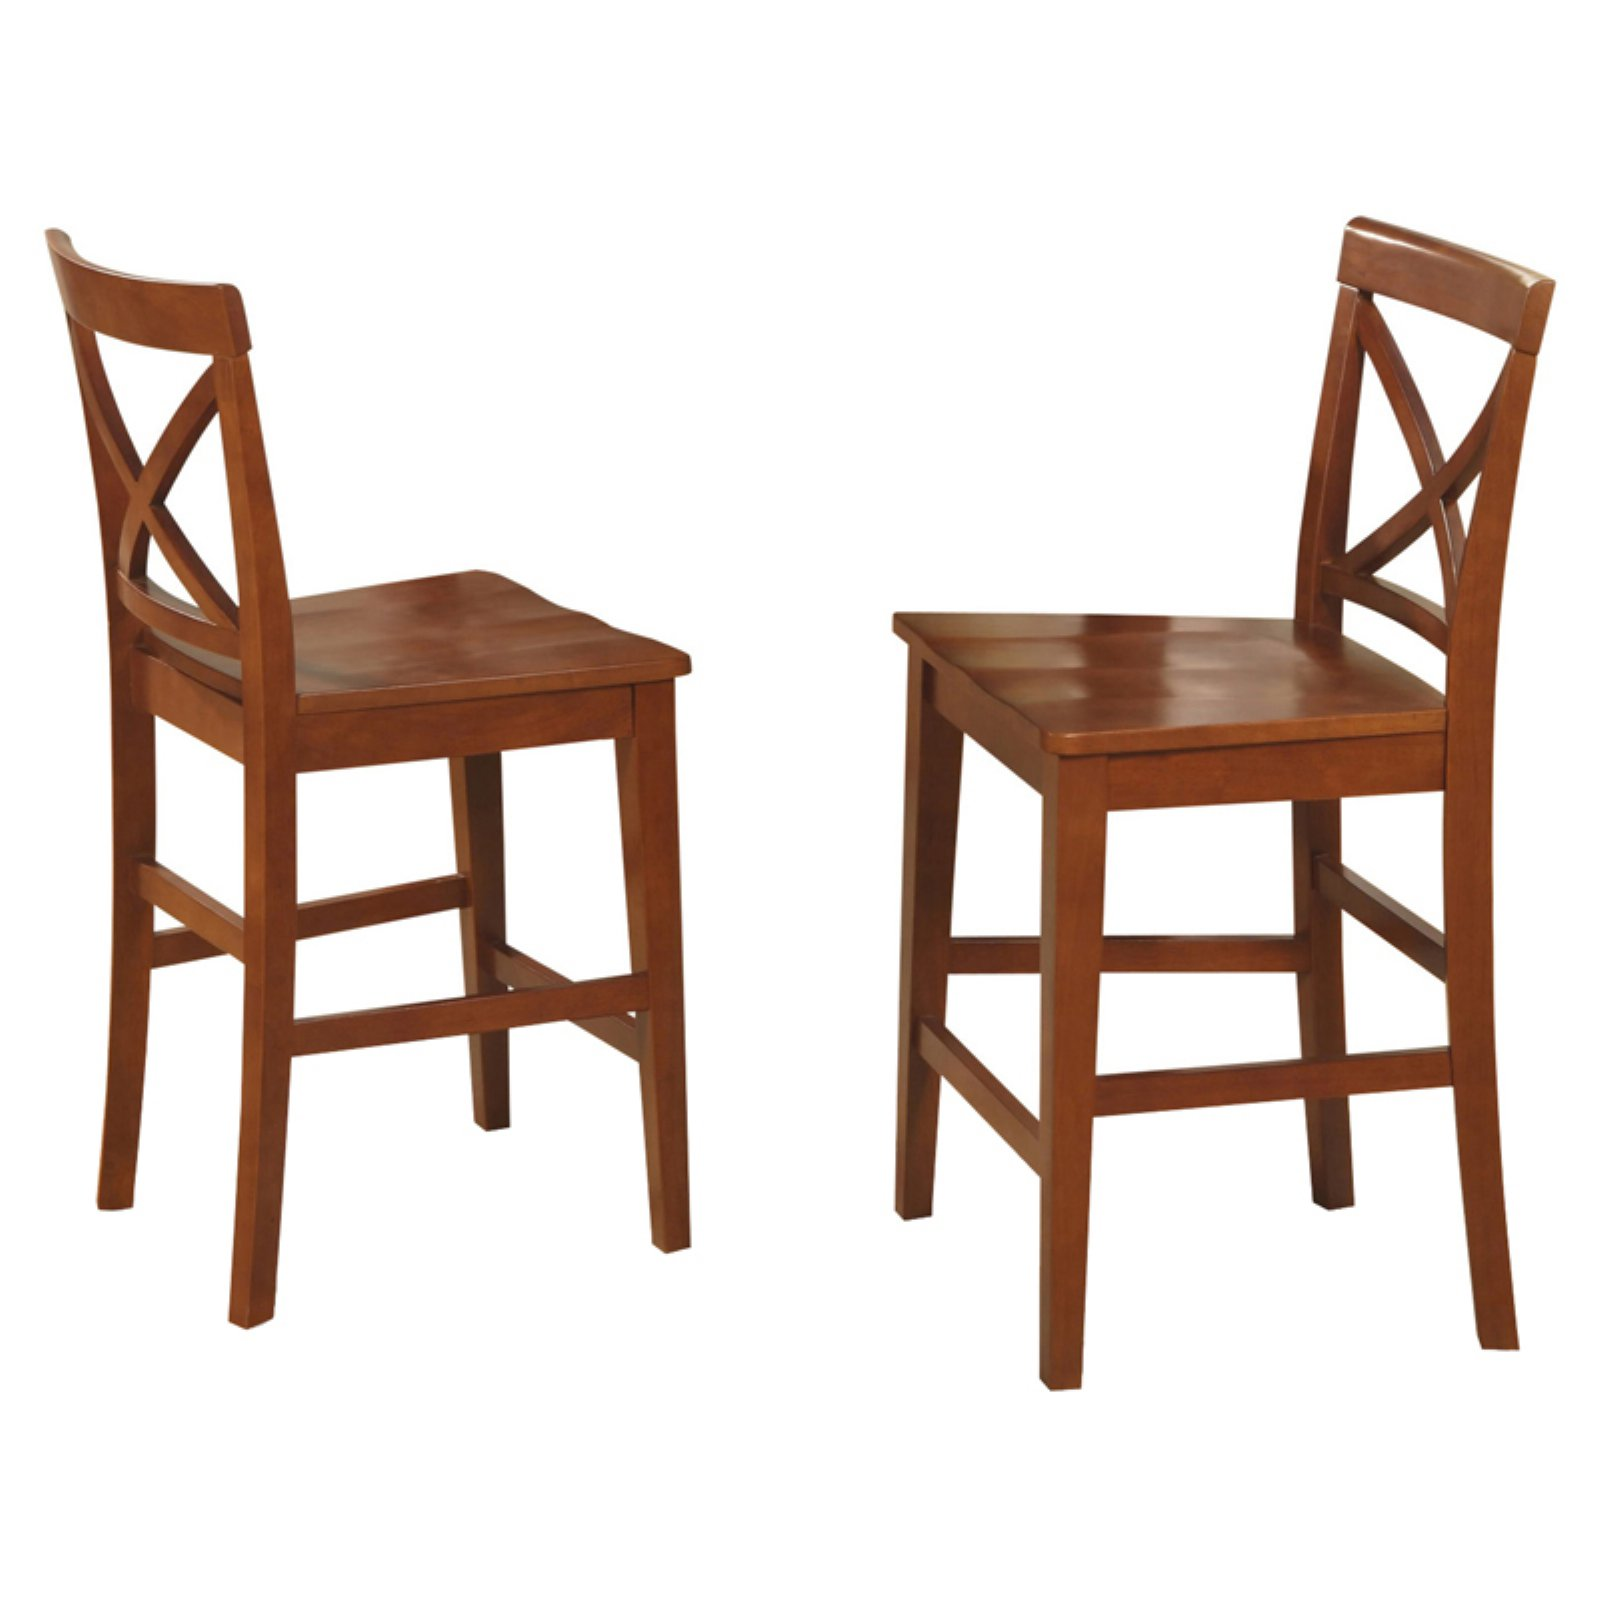 East West Furniture Boston X-Back Counter Height Stool with Wooden Seat - Set of 2